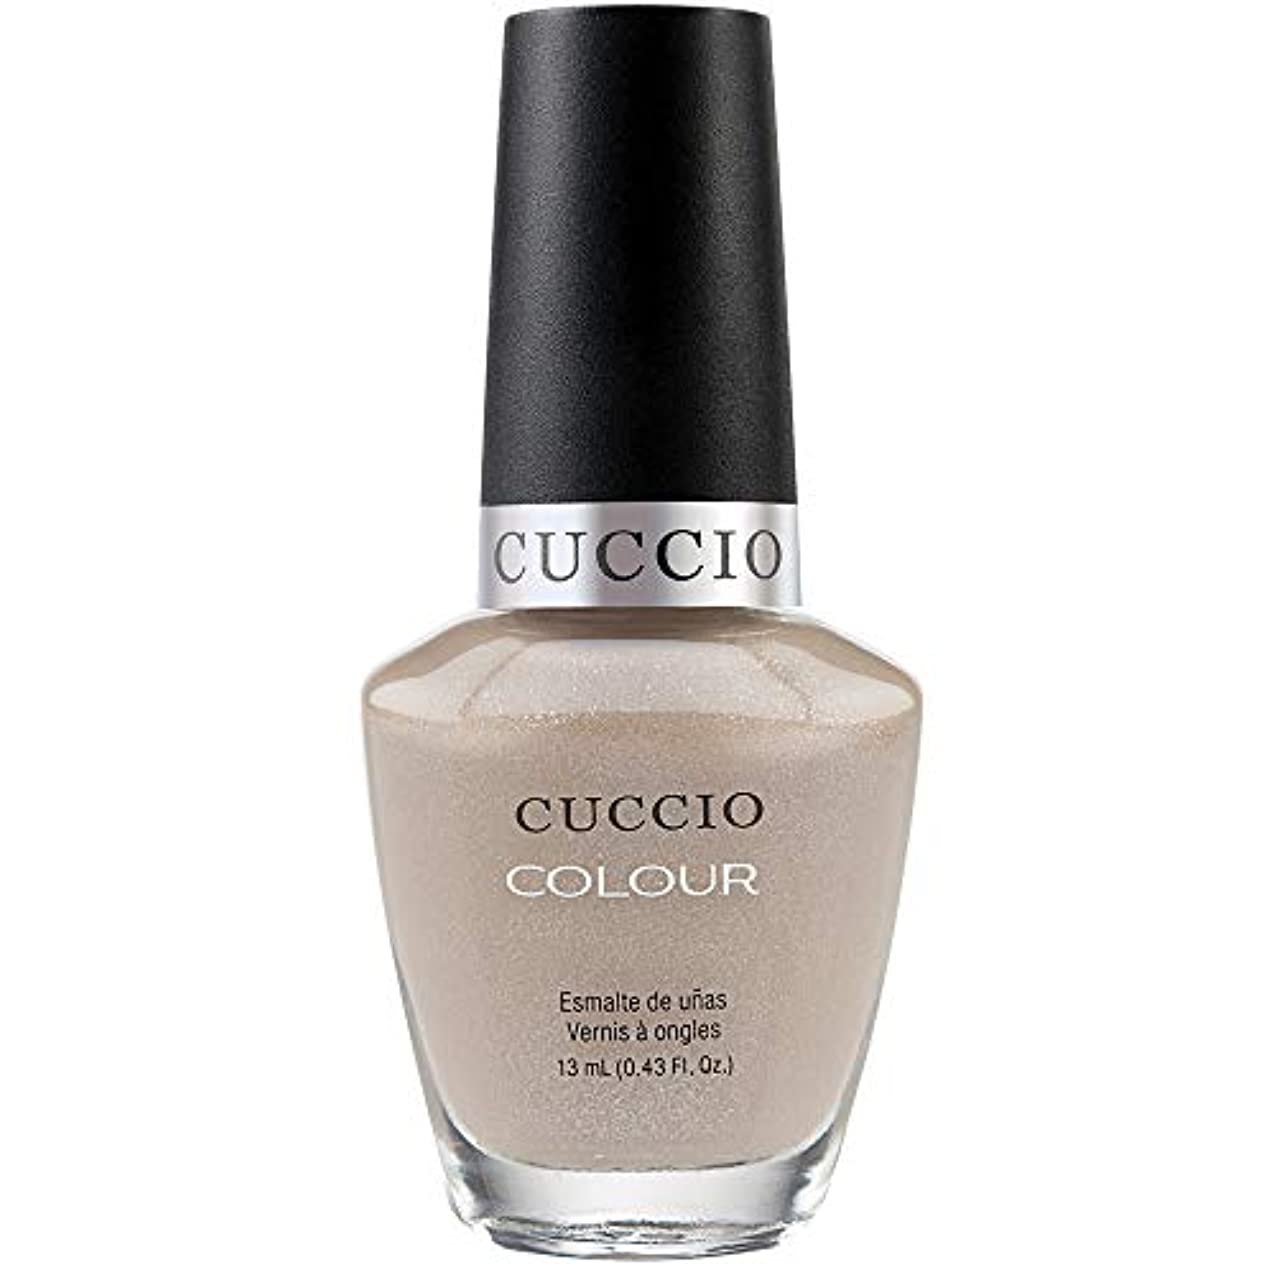 ヒールおそらく尊敬するCuccio Colour Gloss Lacquer - Cream & Sugar - 0.43oz / 13ml